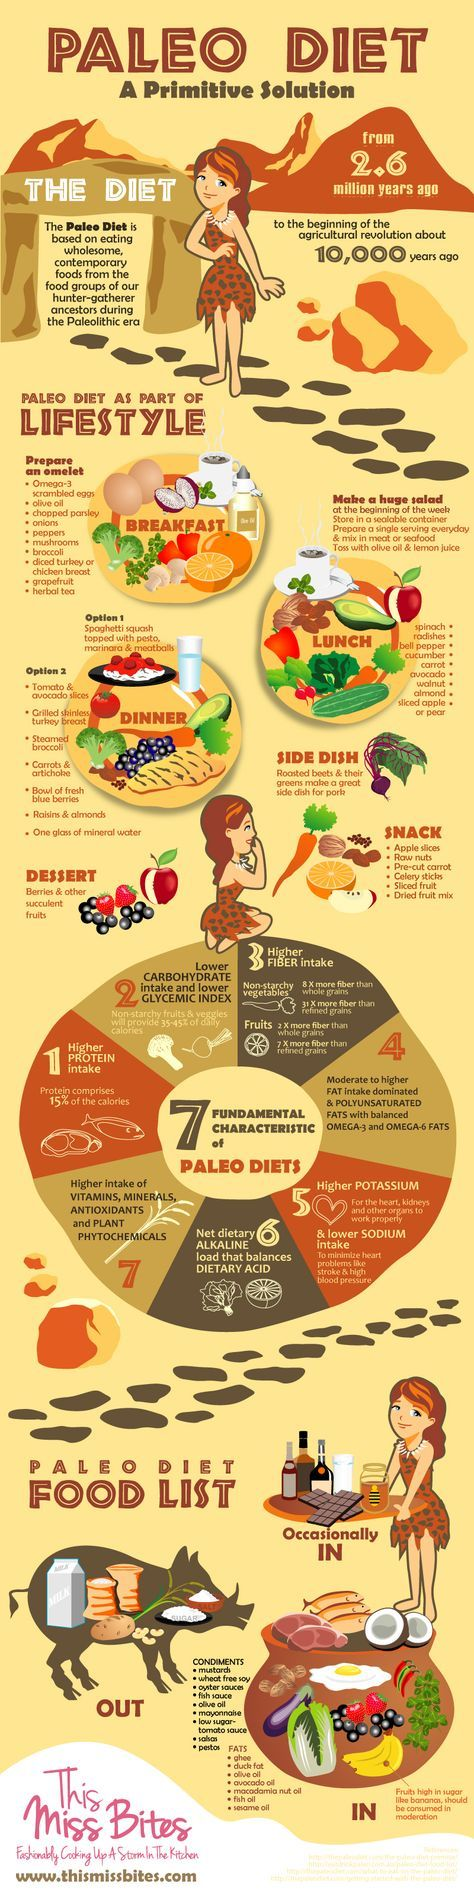 This is an infographic on Paleo Diet. This kind of diet mimics the diet of pre-agricultural, hunter-gatherer ancestors.